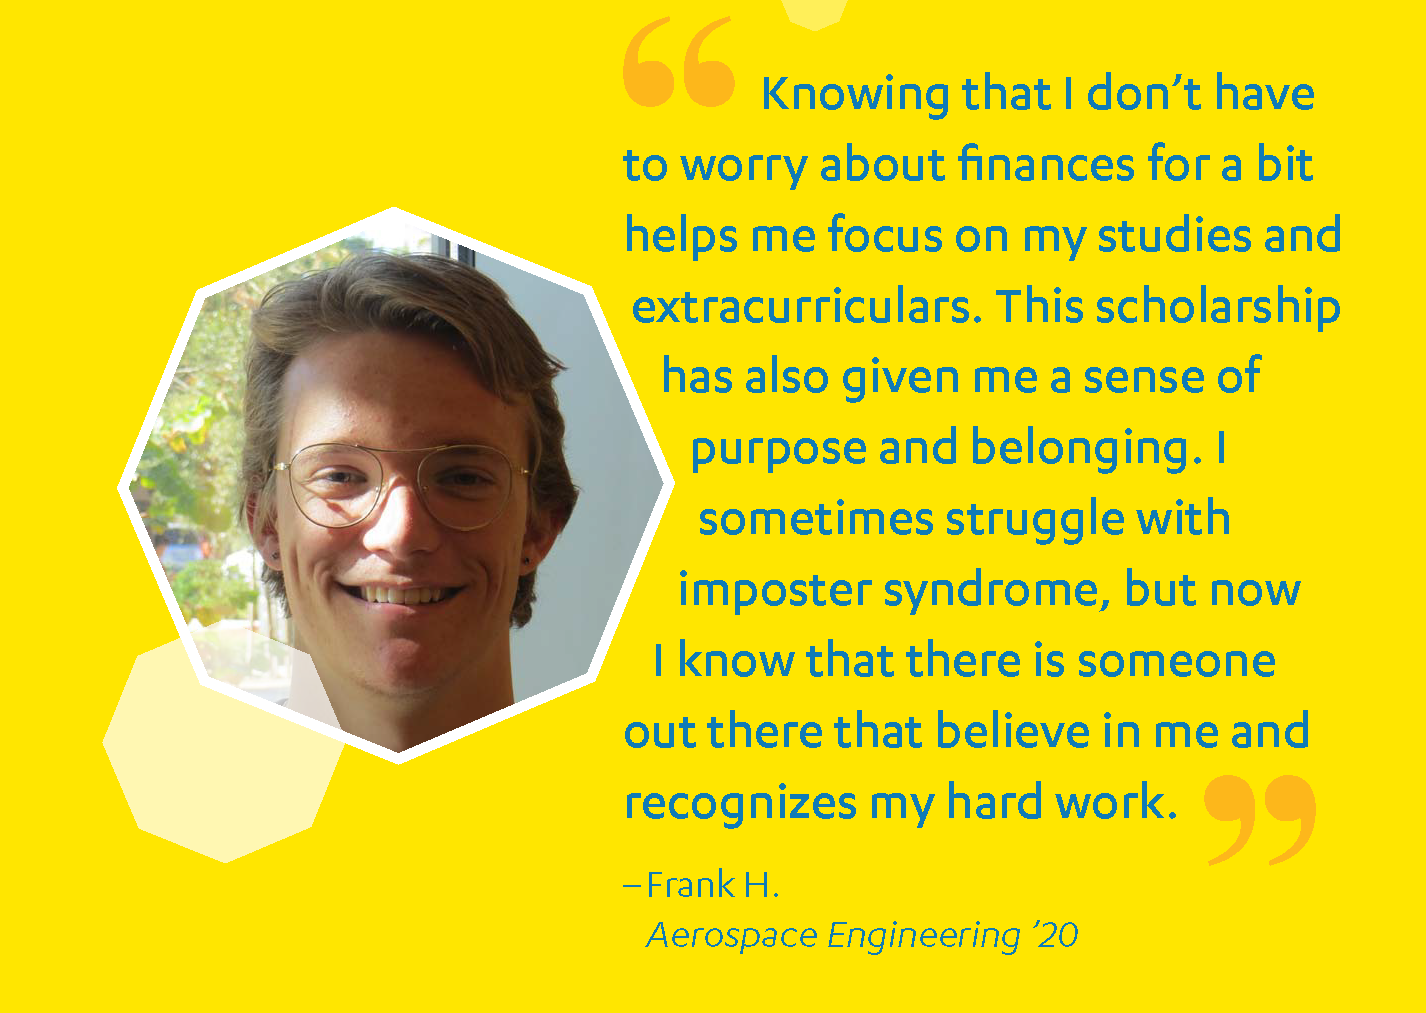 Student testimonial from Frank H. Aerospace Engineering Major